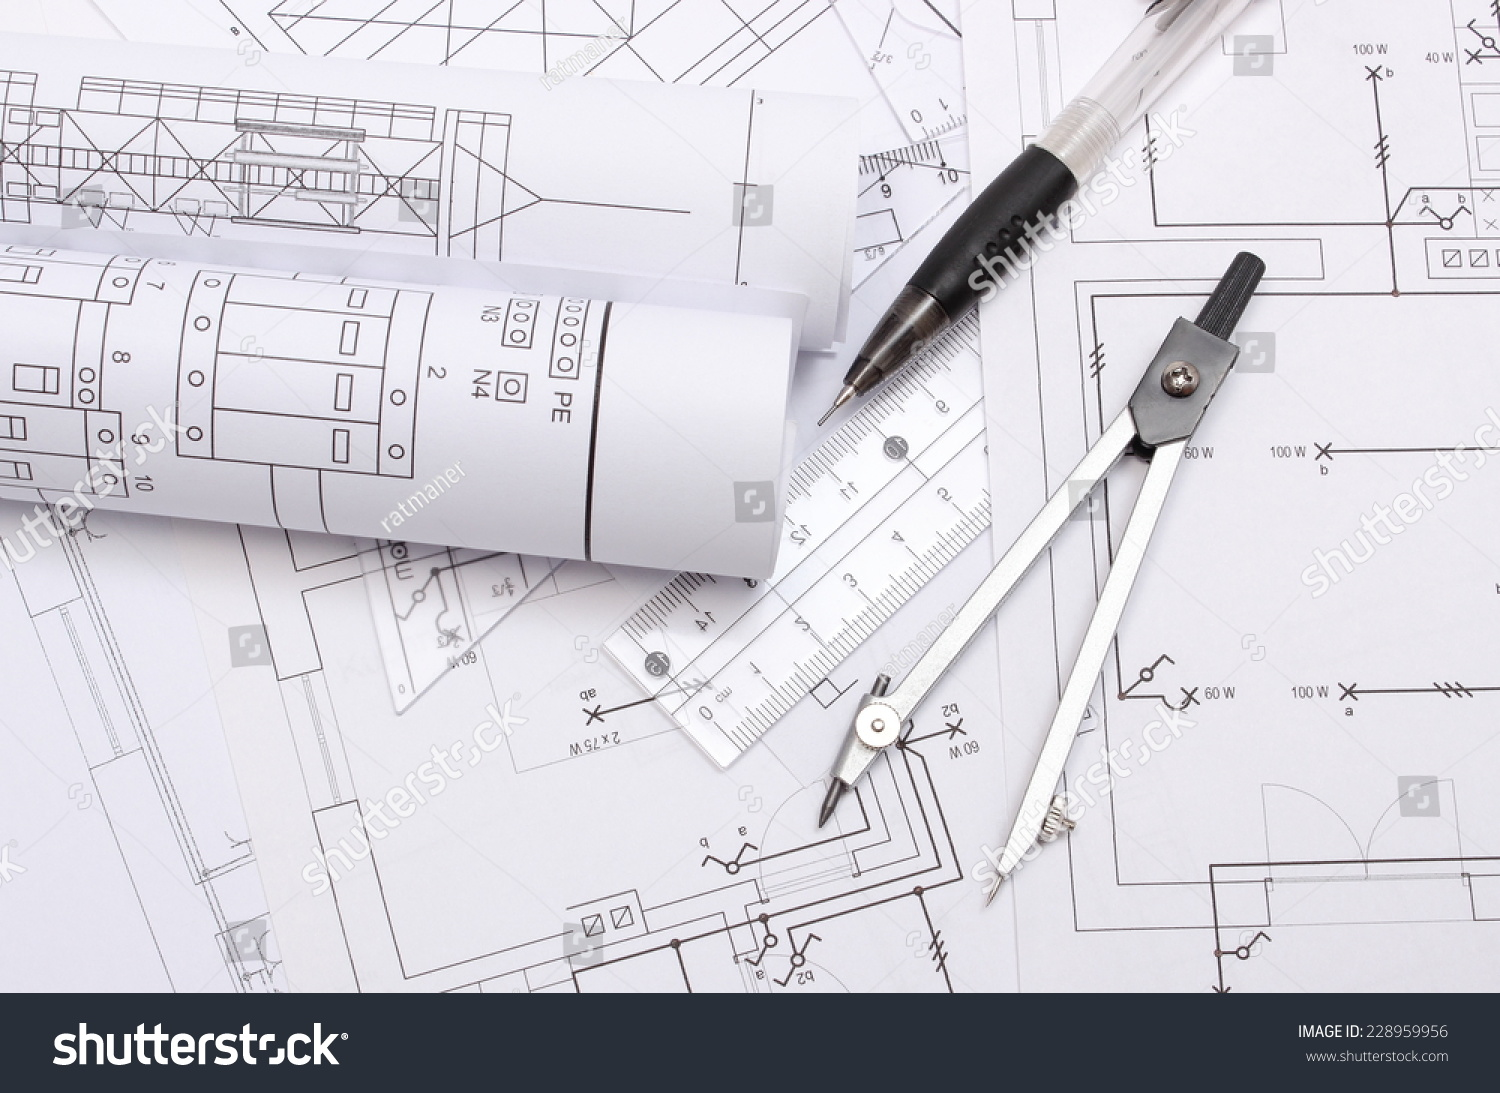 Rolled Electrical Diagrams And Accessories For Drawing Lying On Engineering Construction Of House Drawings The Projects Engineer Jobs Ez